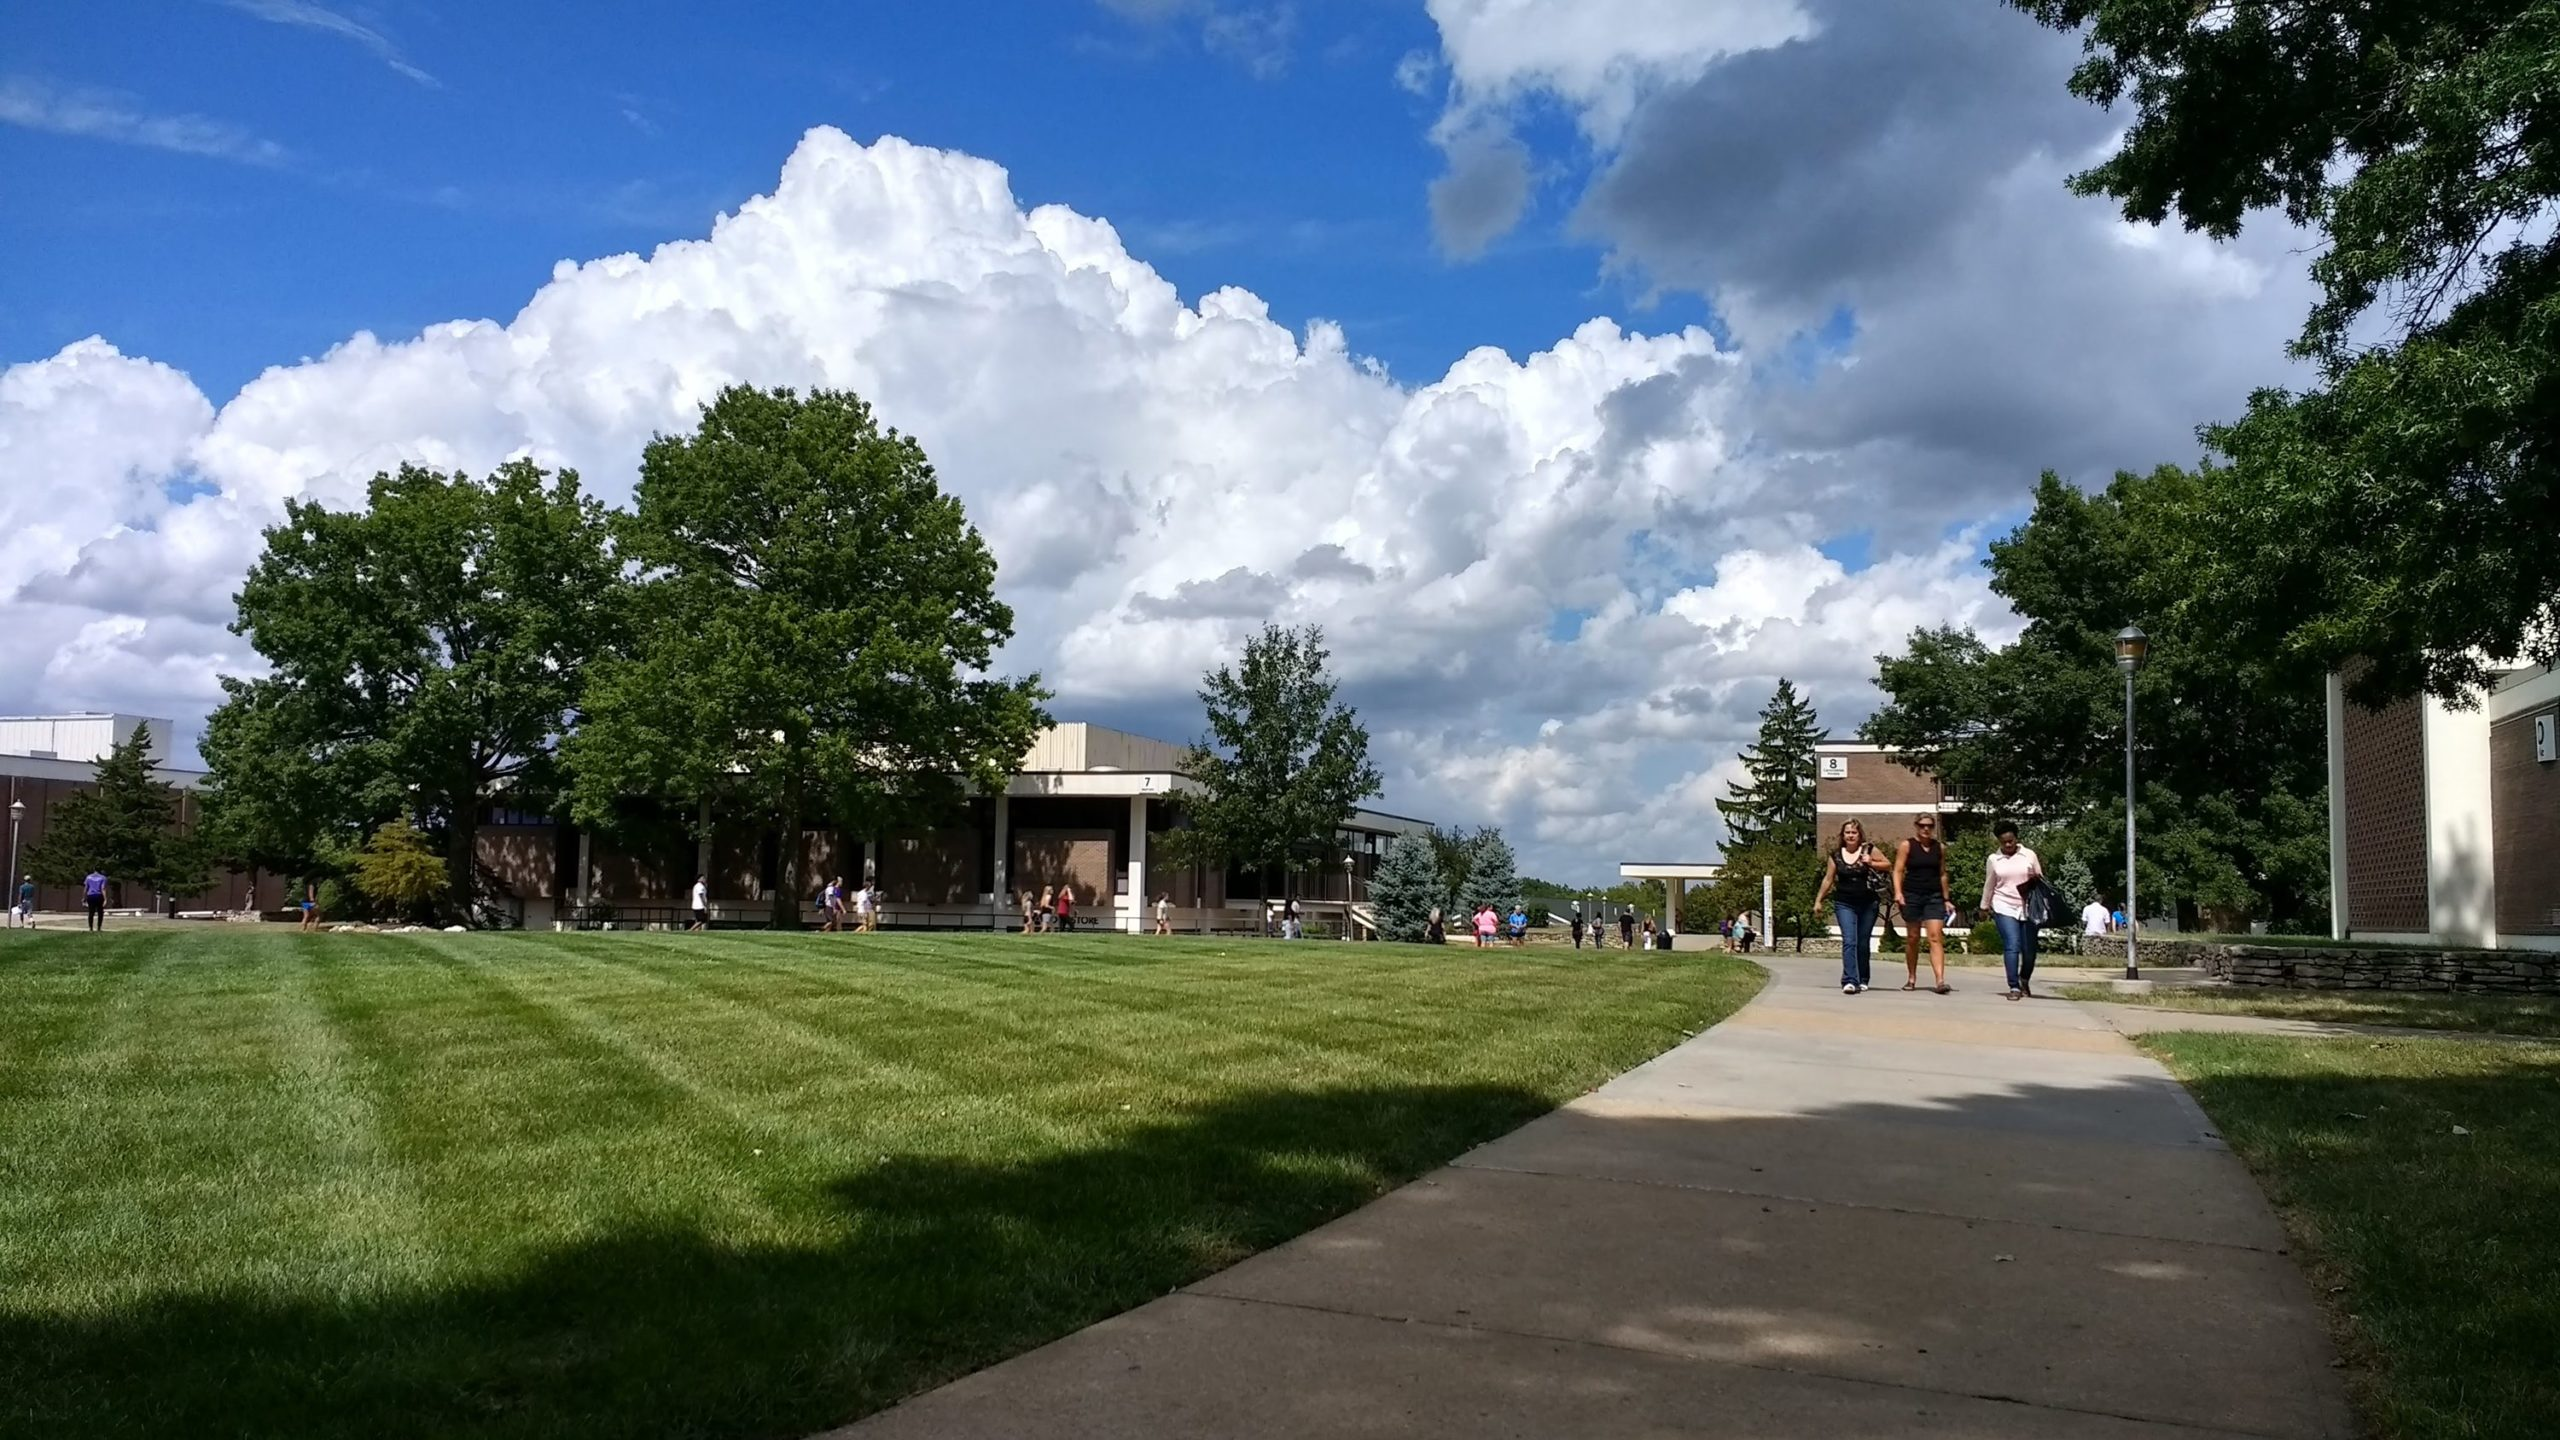 Wide view of the campus Quad with students walking along the sidewalks